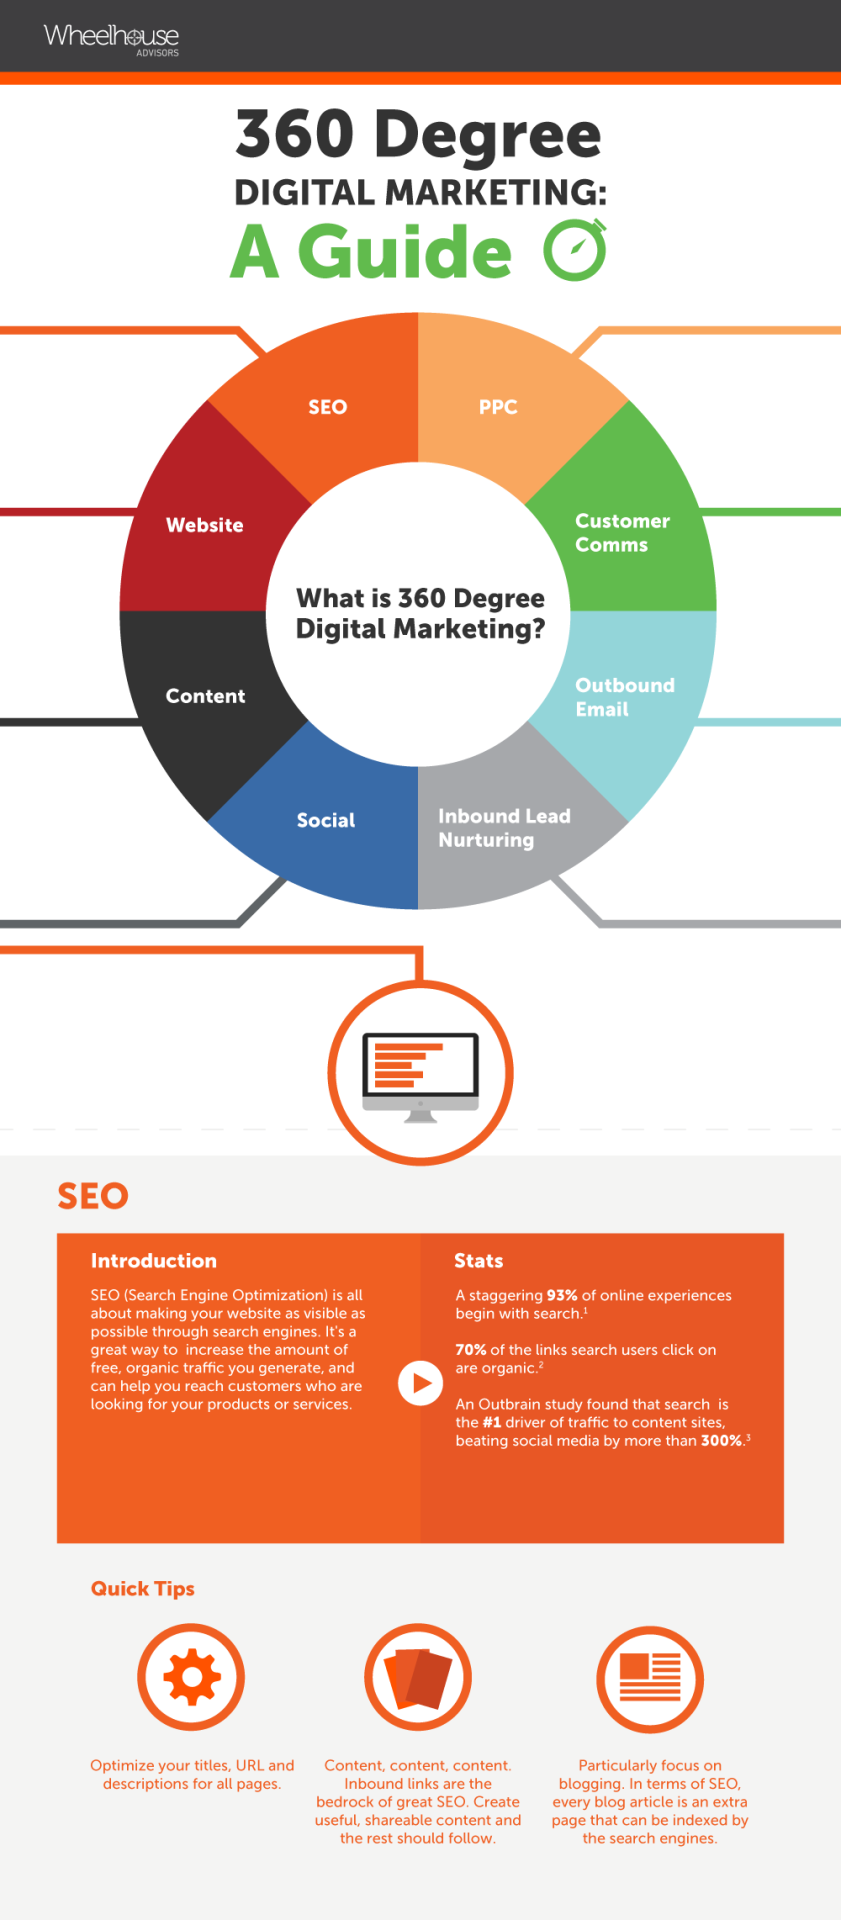 "Developing A 360-Degree Digital Marketing Strategy - infographic    http://www.digitalinformationworld.com/2015/09/infographic-360-degree-digital-marketing-a-guide.html   ""360 degree digital marketing is one of the most popular marketing philosophies around right now – but what does it really mean, and how can you do it?  Well, in short, a 360 degree approach is all about taking a broad and all-encompassing view of your entire customer journey, from discovery to purchase, across multiple devices and touch points.""  Learn more 360° digital marketing strategy in below infographic, which comes courtesy of wheelhouseadvisors.   #digitalmarketing   #SEO   #socialmedia   #infographic   #marketing     https://plus.google.com/+AlejandroFranceschi/posts/f6NWwFpCLB2"